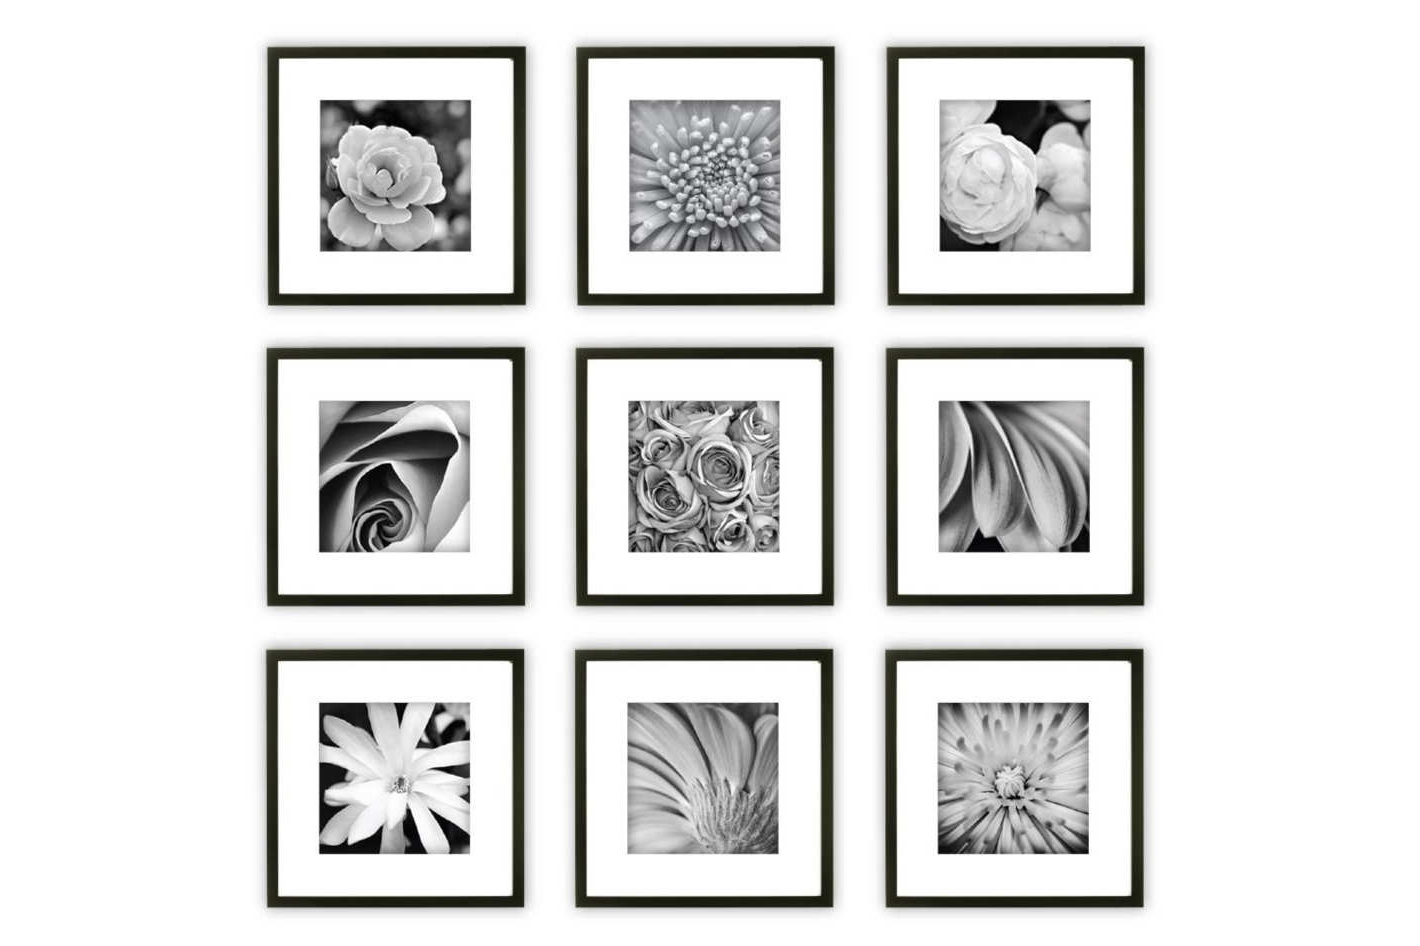 Most Popular Wall Art Frames With Regard To Best Affordable Wall Art Frames (View 8 of 15)